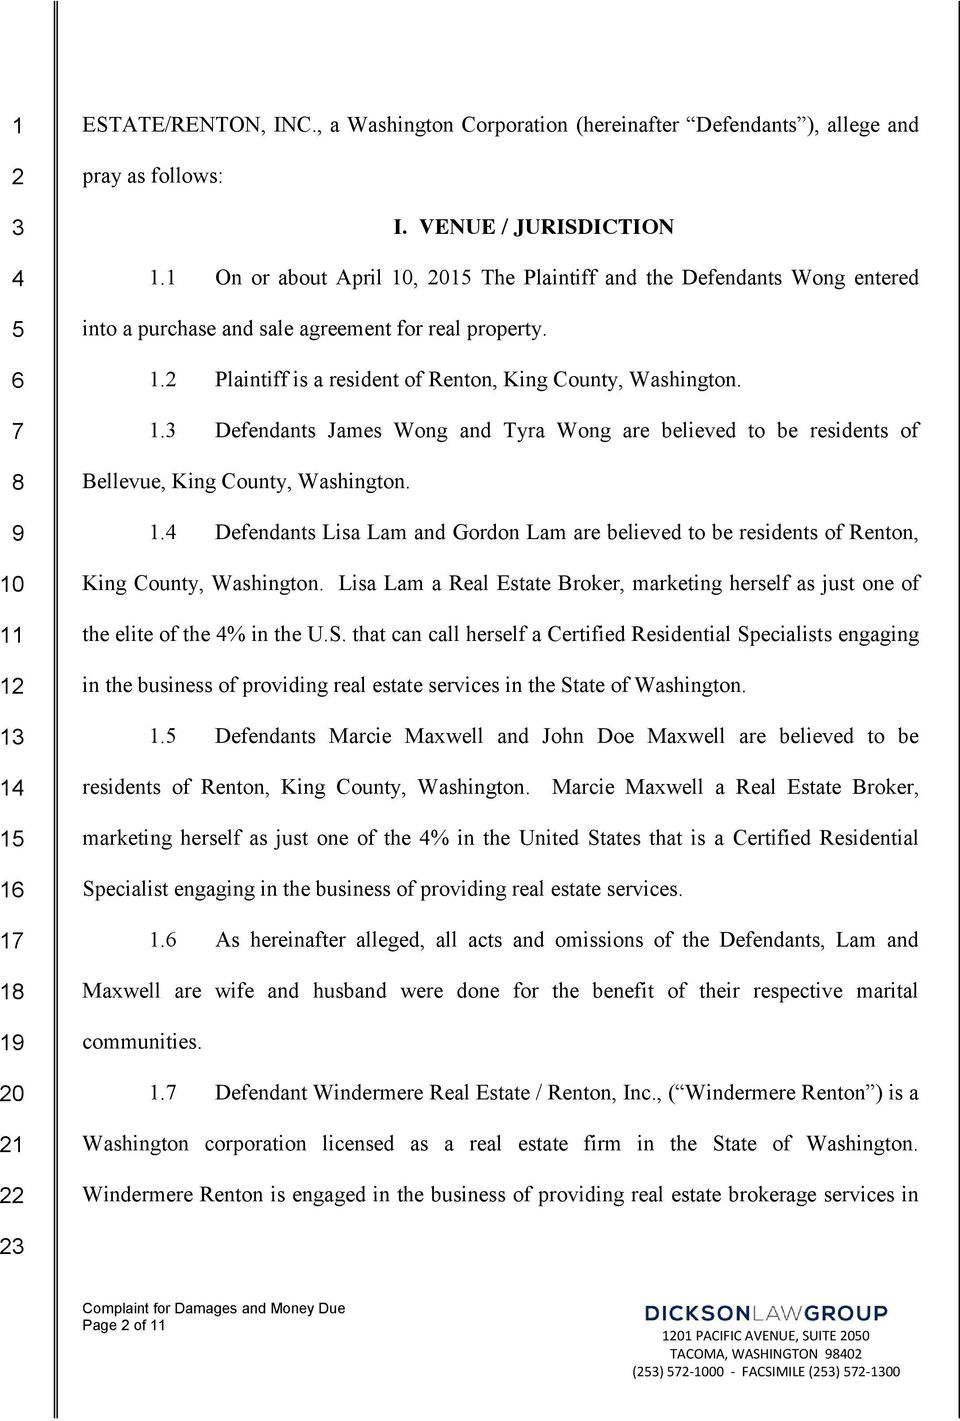 Plaintiff is a resident of Renton, King County, Washington. 1. Defendants James Wong and Tyra Wong are believed to be residents of Bellevue, King County, Washington. 1. Defendants Lisa Lam and Gordon Lam are believed to be residents of Renton, King County, Washington.